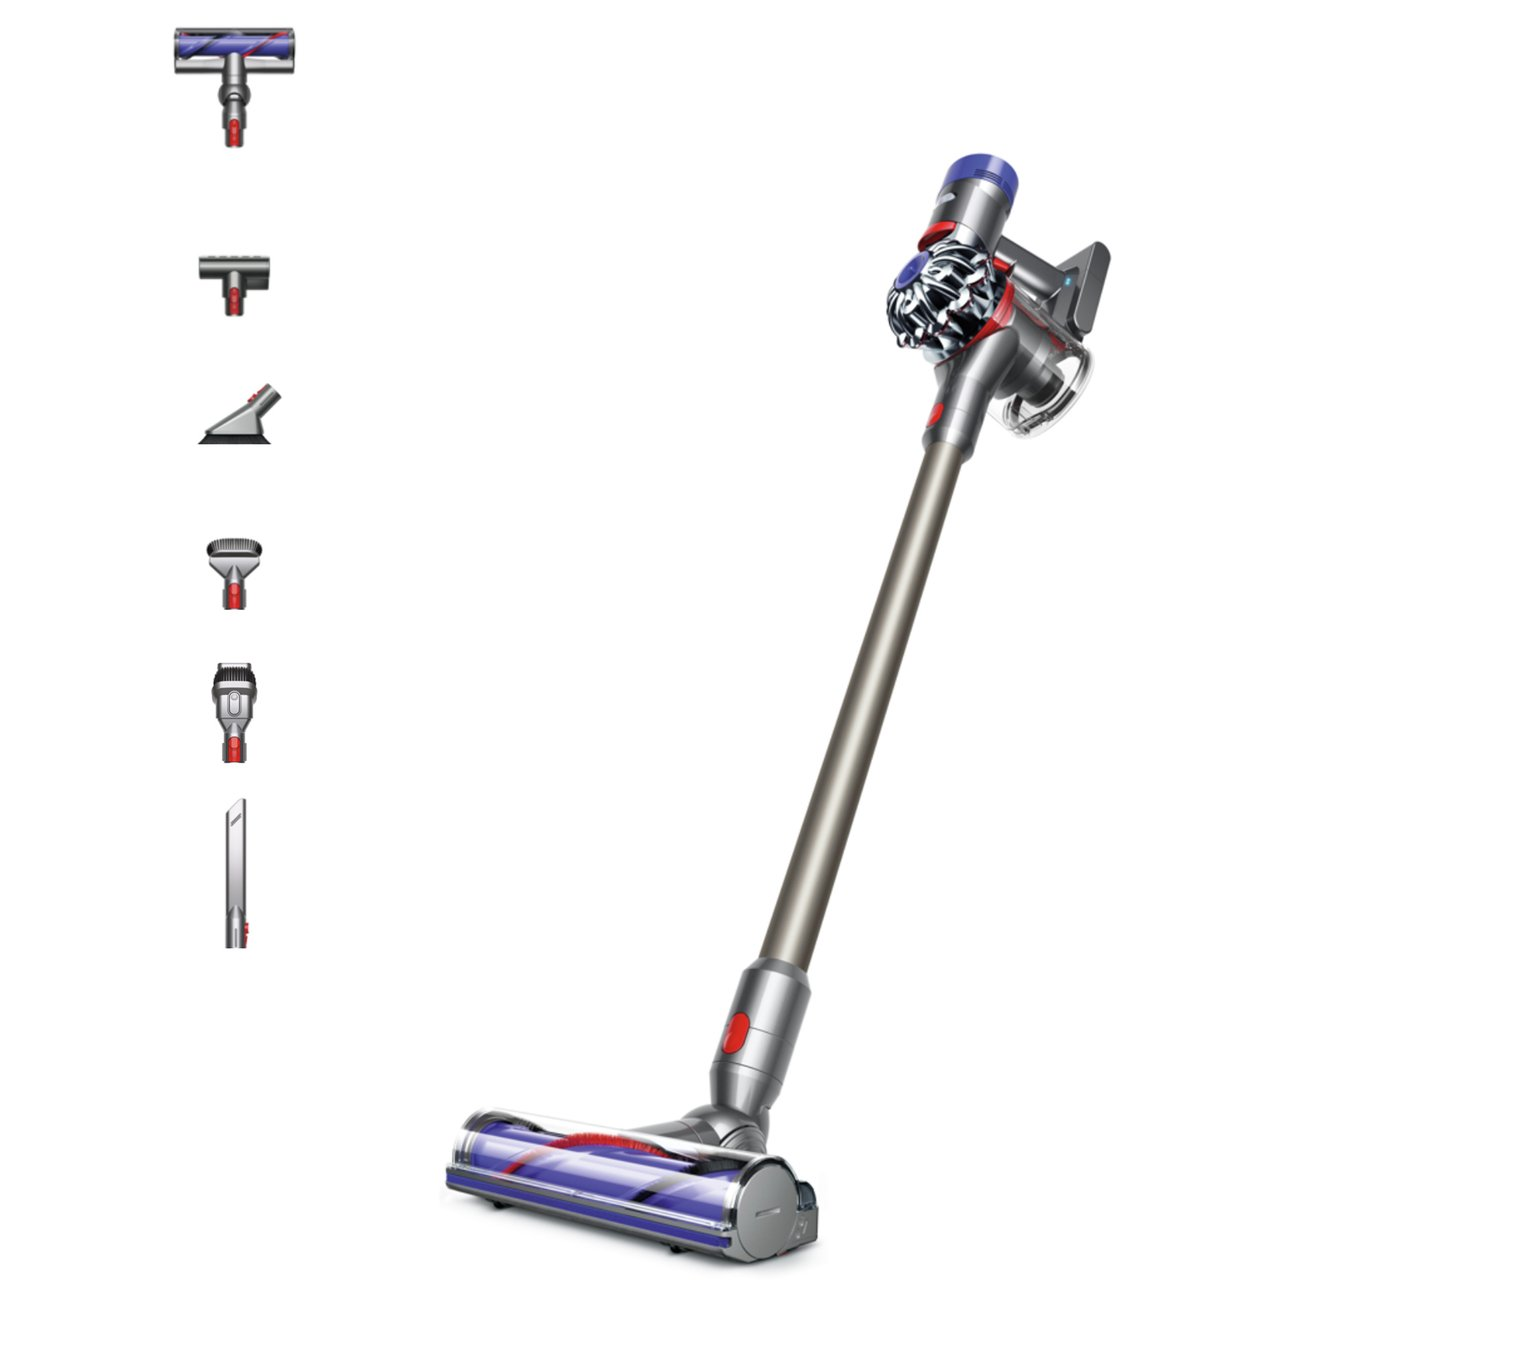 Dyson V8 Animal Extra Cordless Vacuum Cleaner